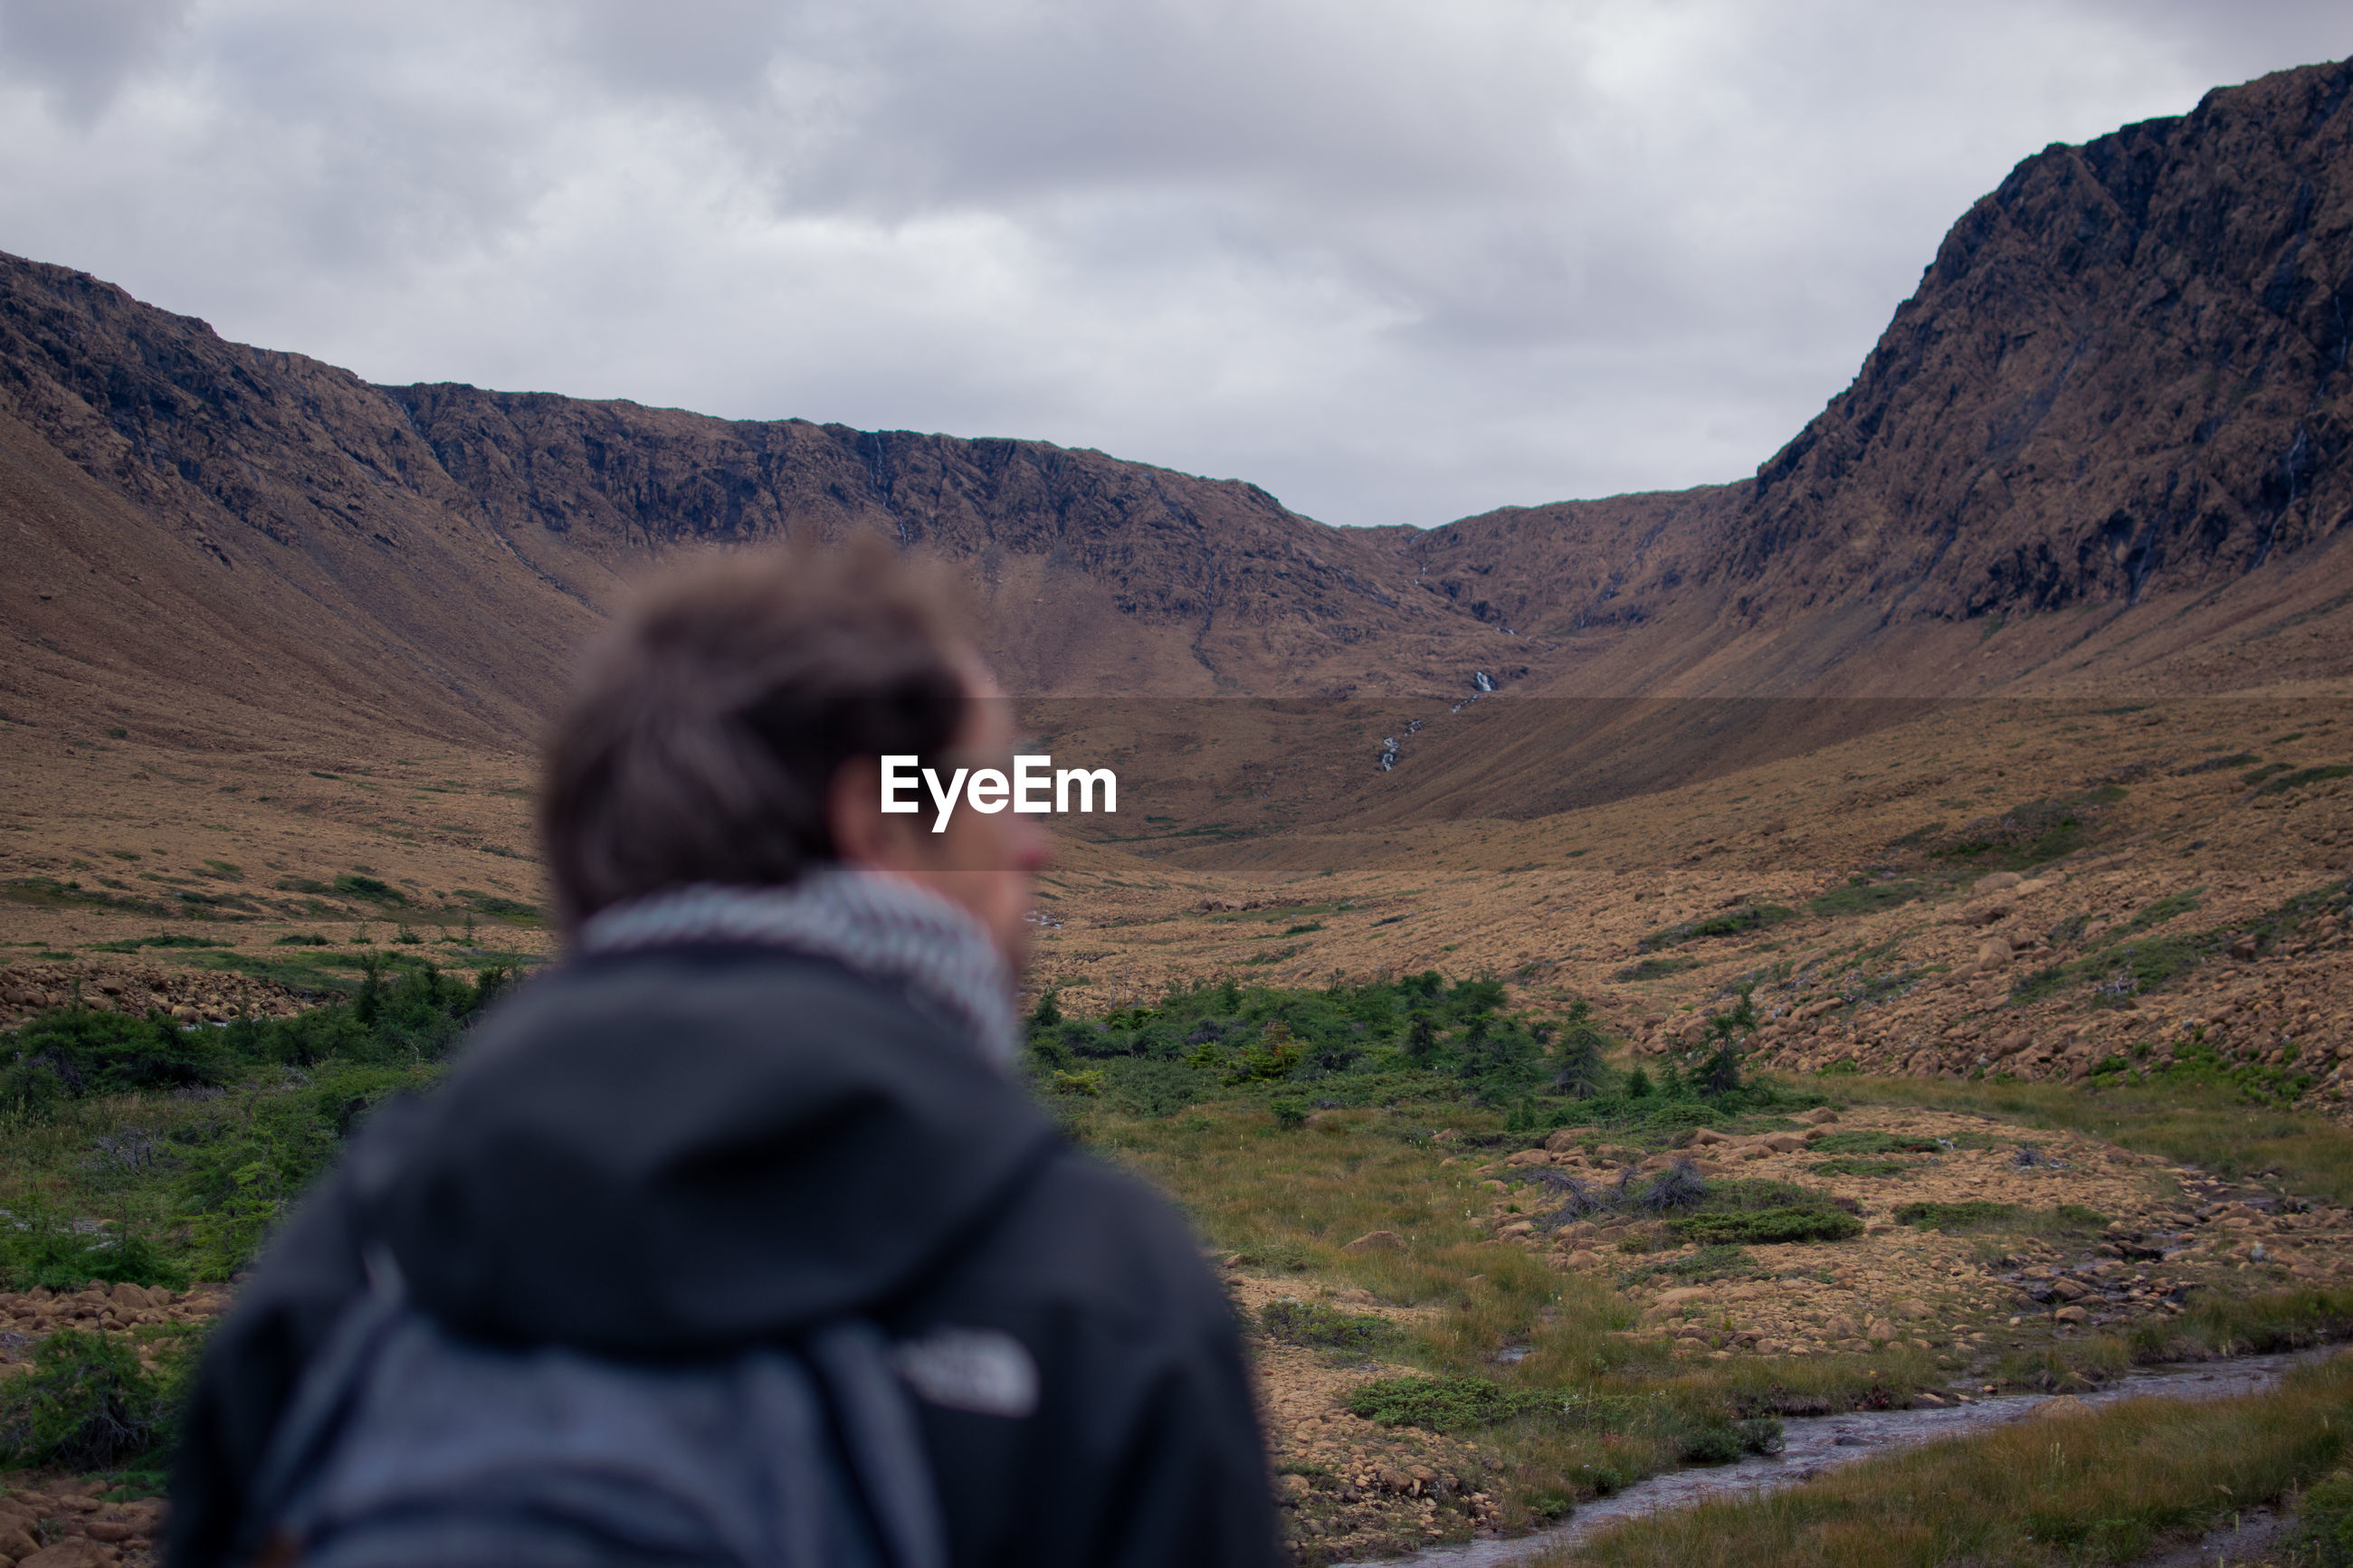 Rear view of man standing by mountains against cloudy sky